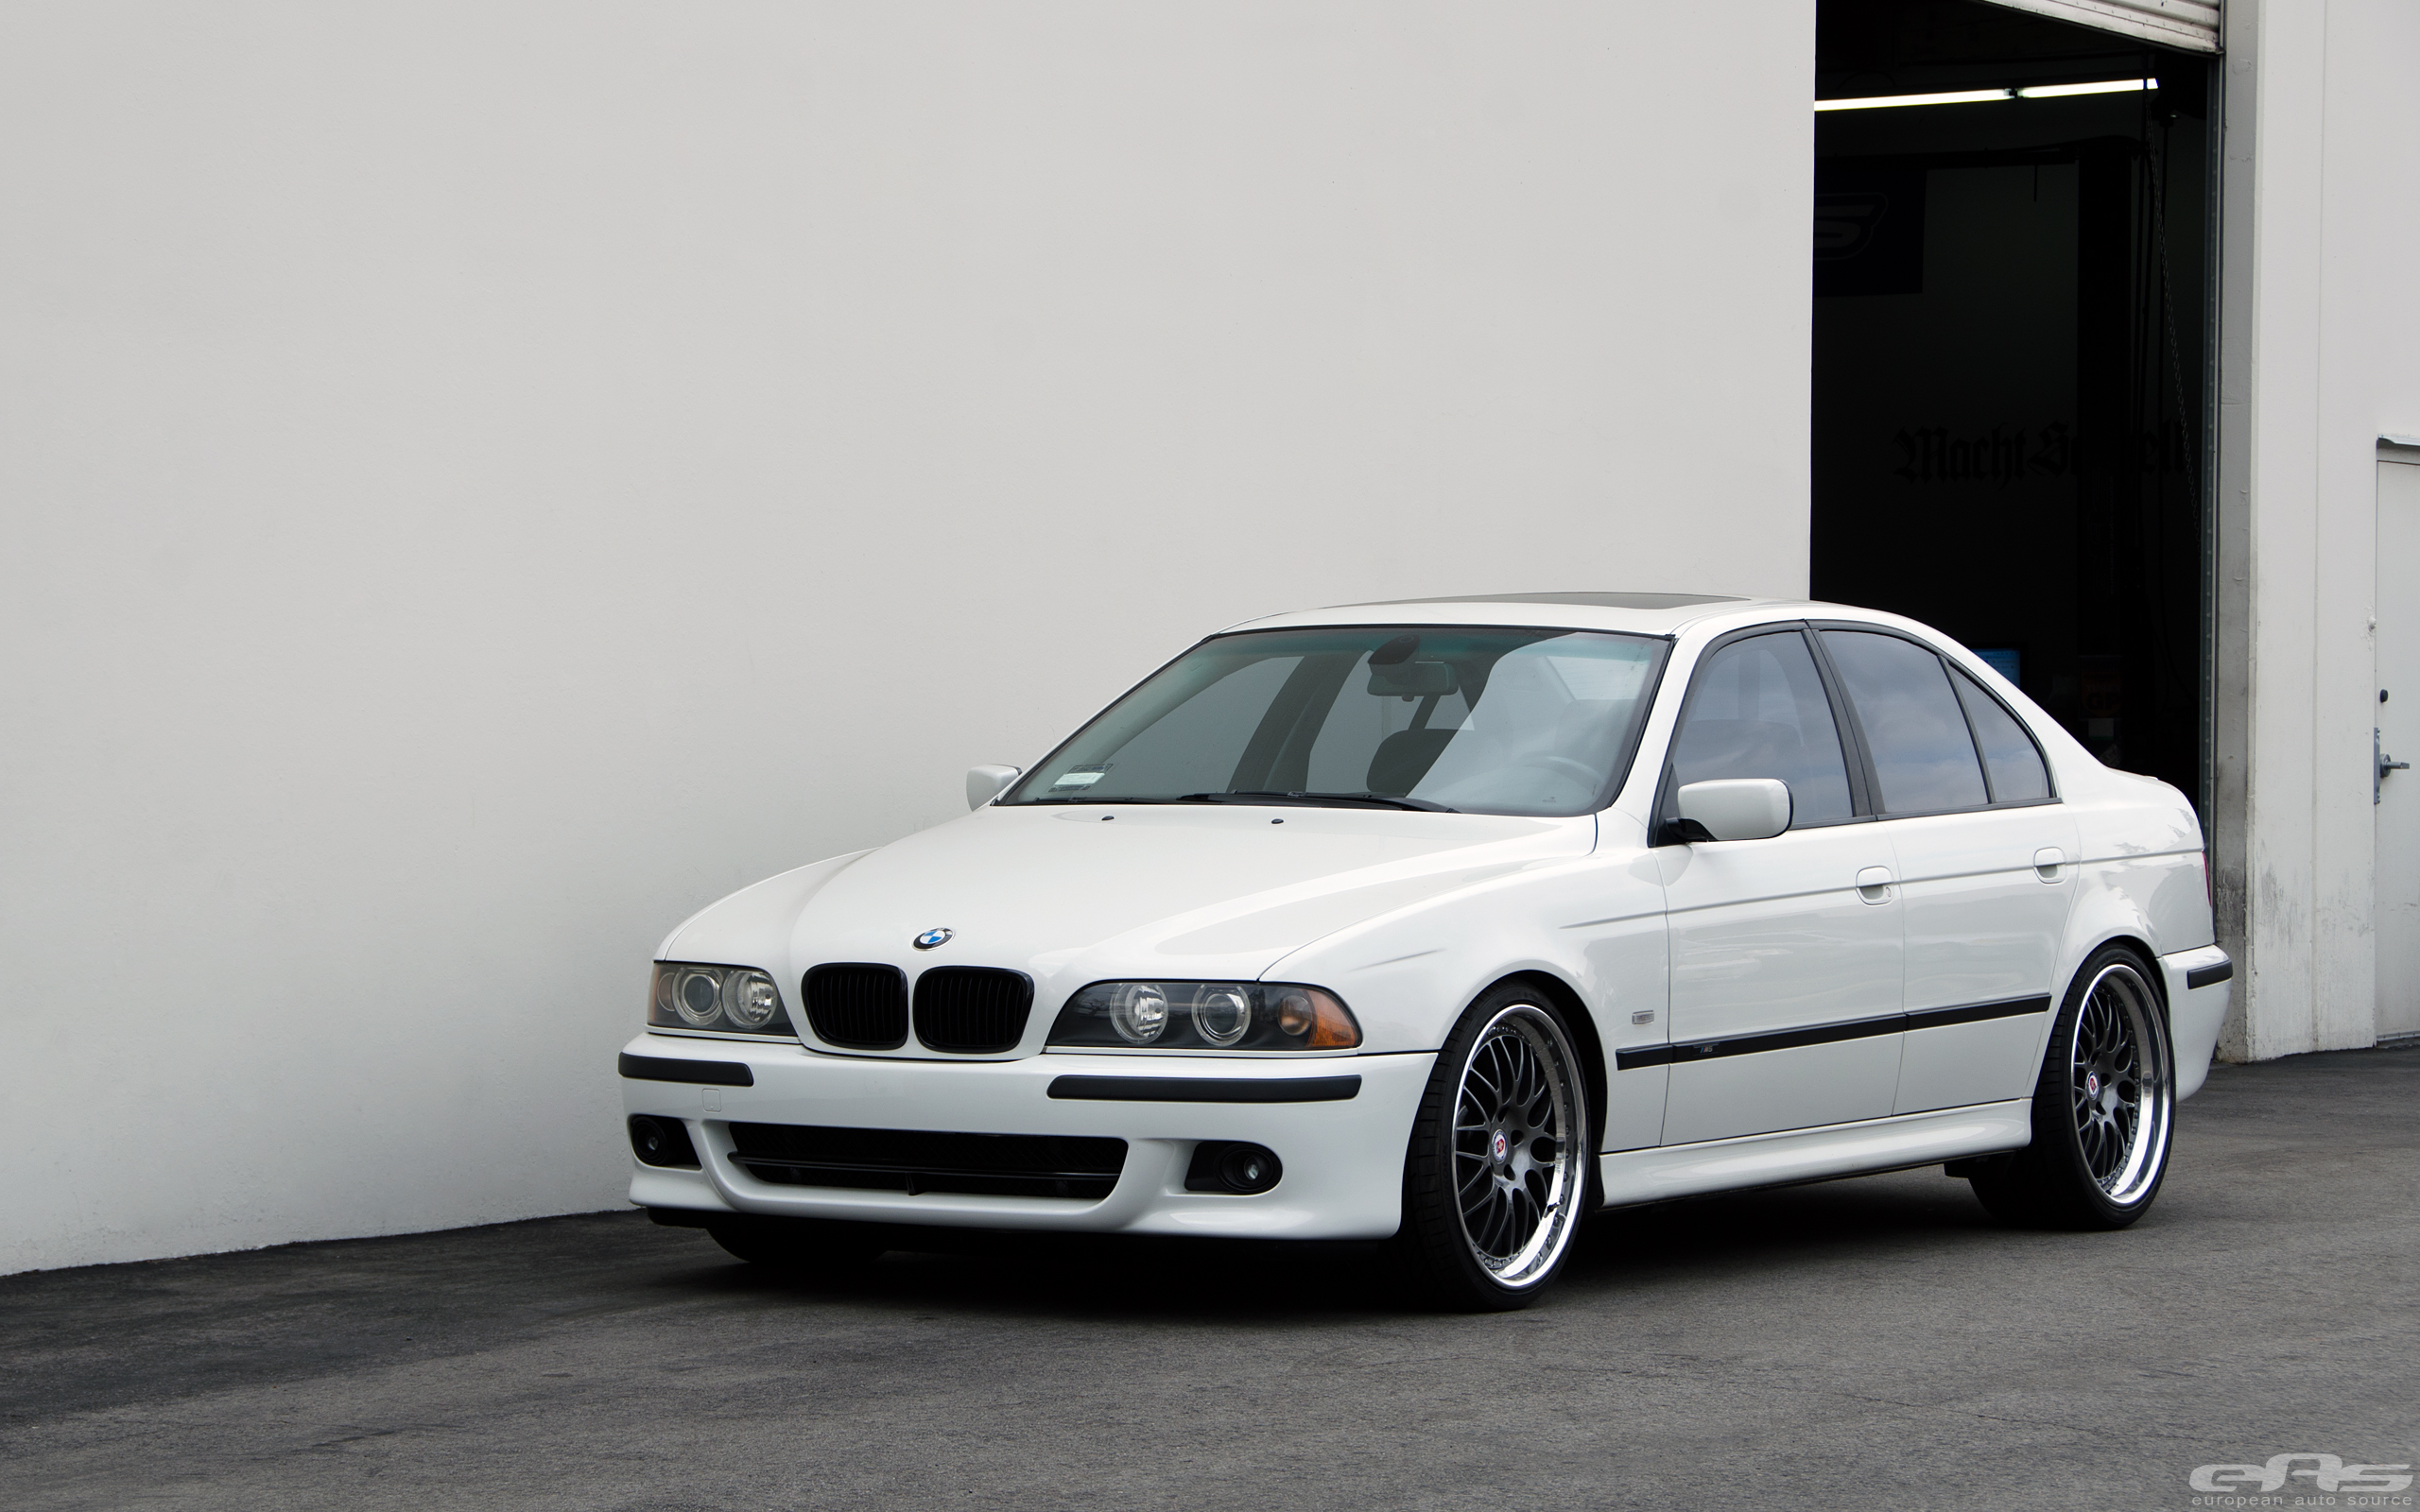 Matte Black Wallpaper Bmw E39 530i Gets Lower At Eas Still Looks Good